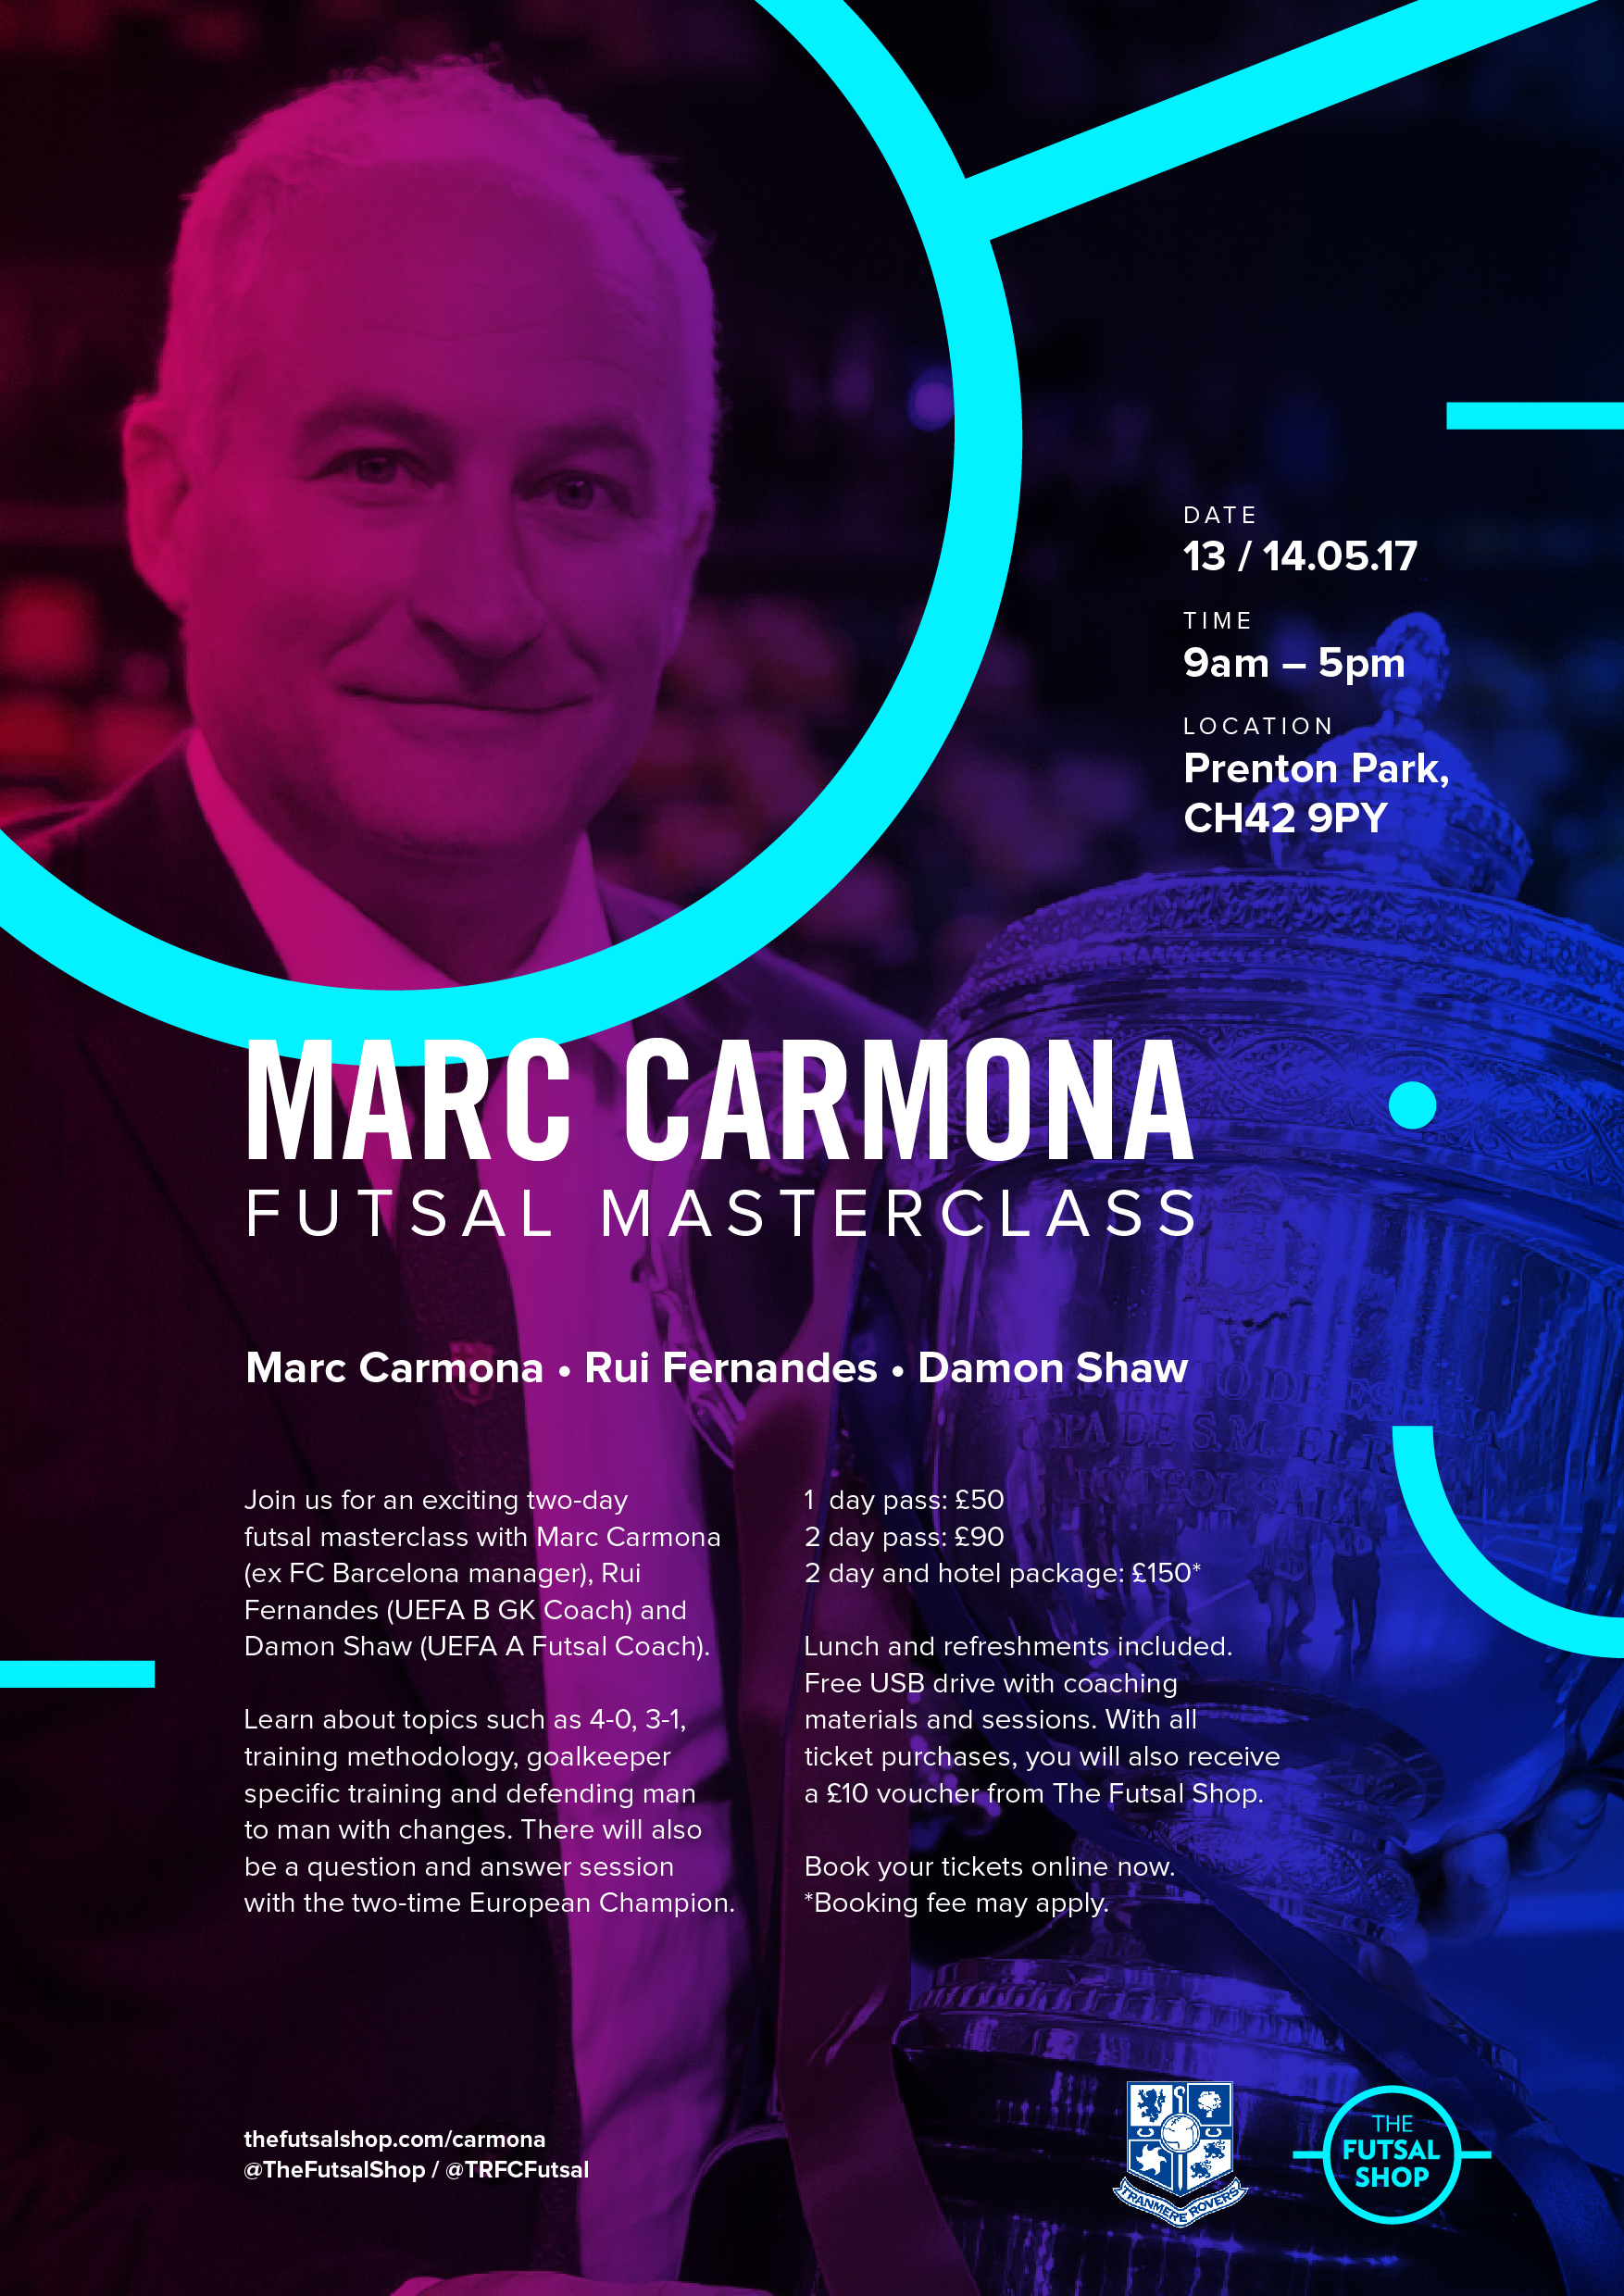 Tranmere Rovers and The Futsal Shop are delighted to present an exclusive Futsal coaching workshop with former FC Barcelona manager Marc Carmona on May 13/14.